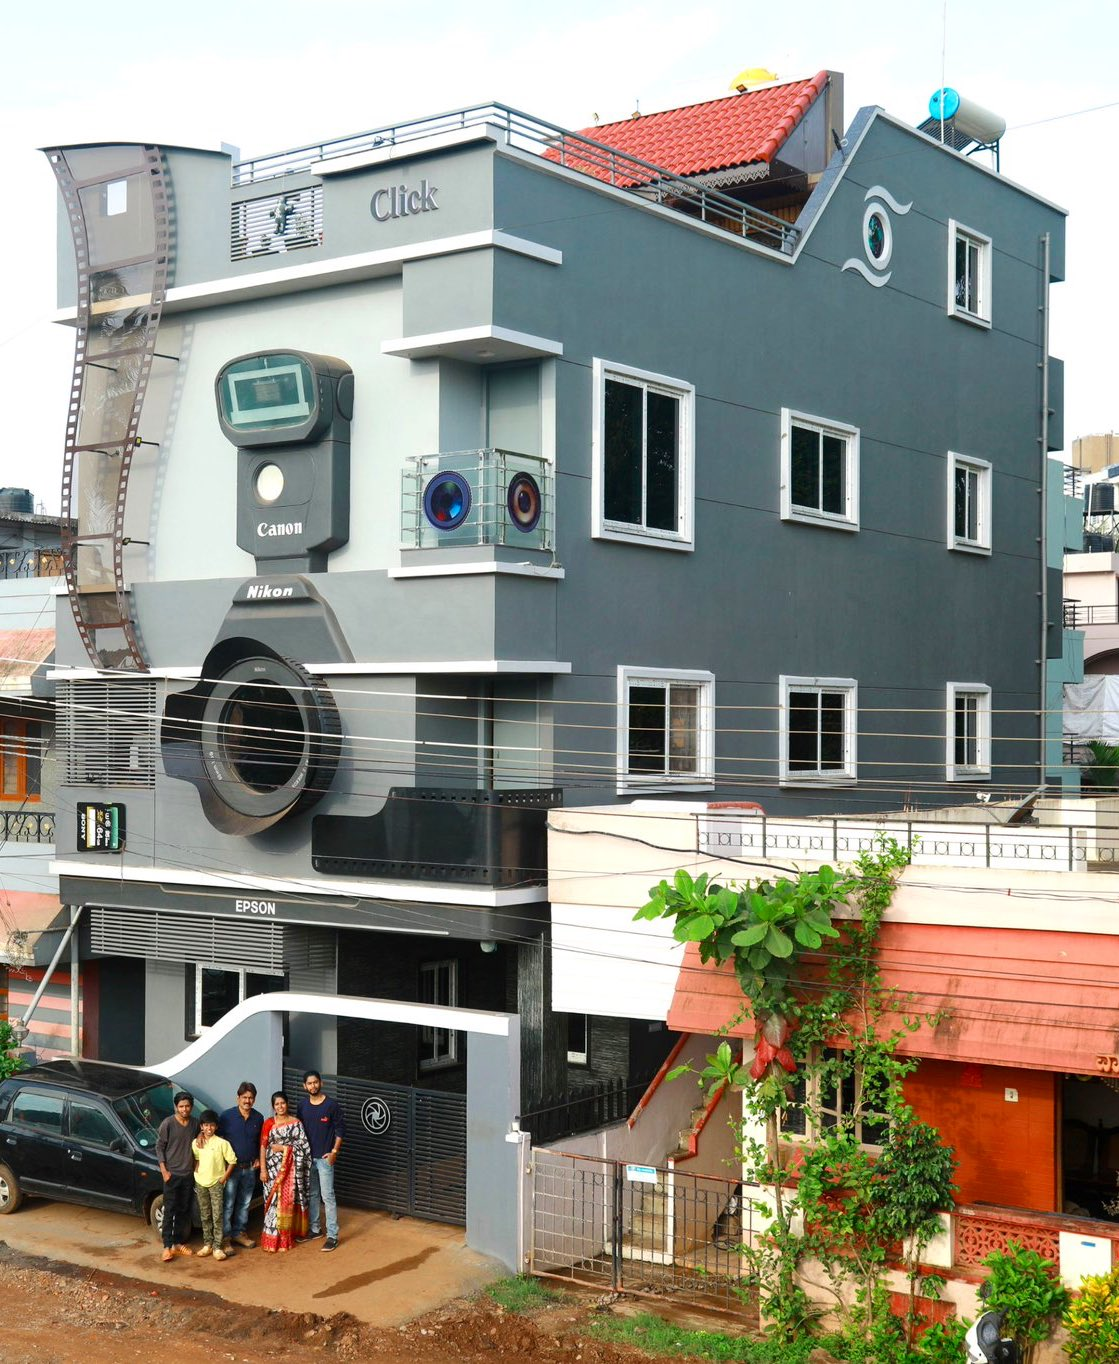 karnataka | photographer couple builds camera-shaped house names their kids nikon canon and epson